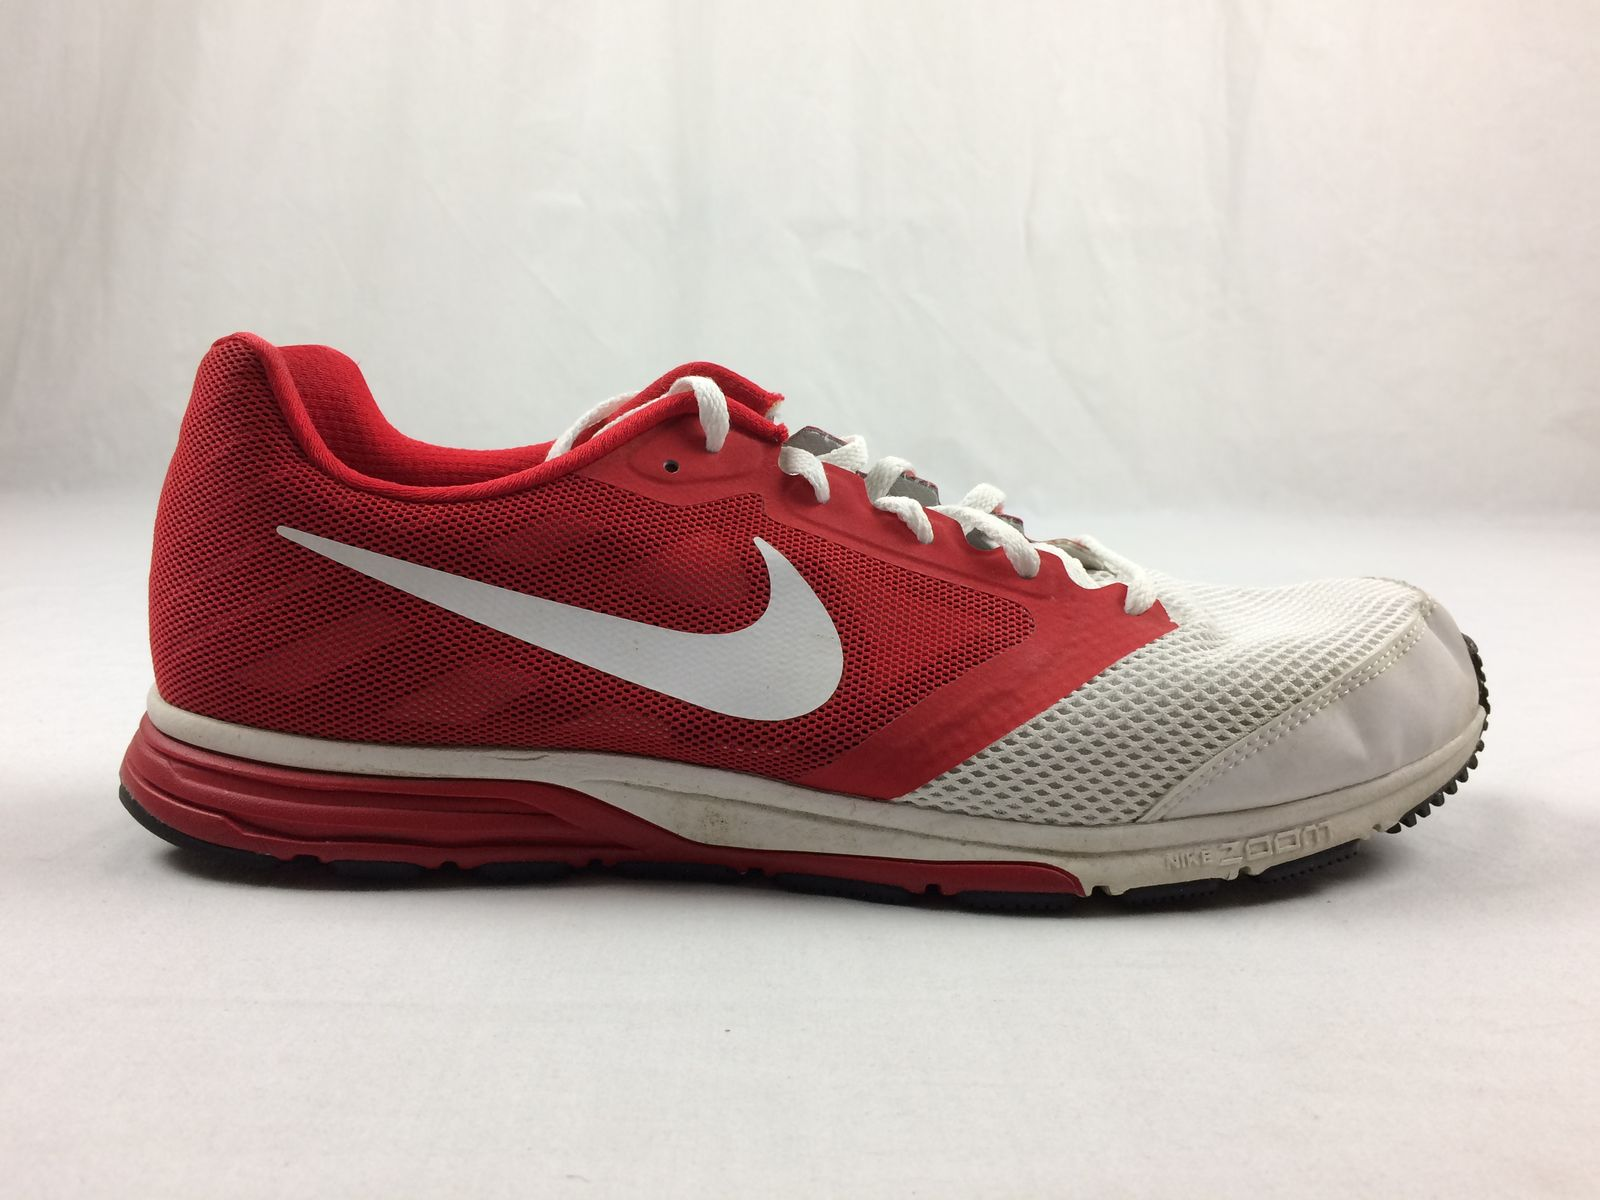 official photos 87732 9286d Nike Air Zoom Fly - Running, Cross Training (Mens Multiple Sizes) Used